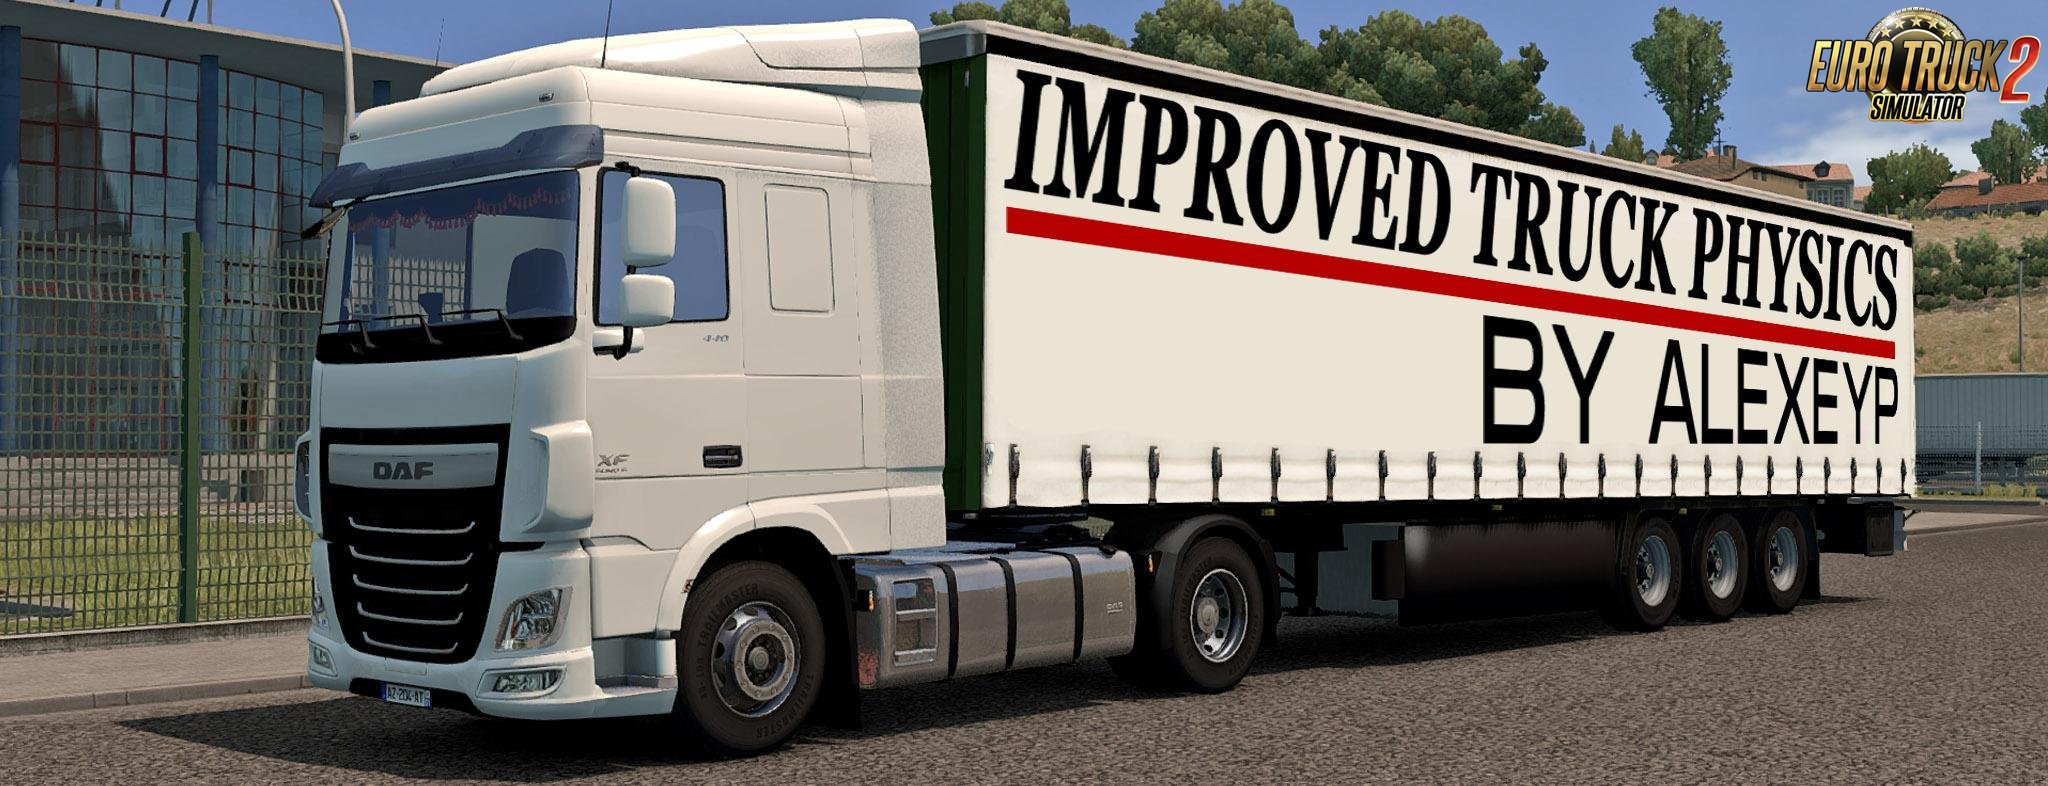 Improved truck physics v.2.4 by AlexeyP